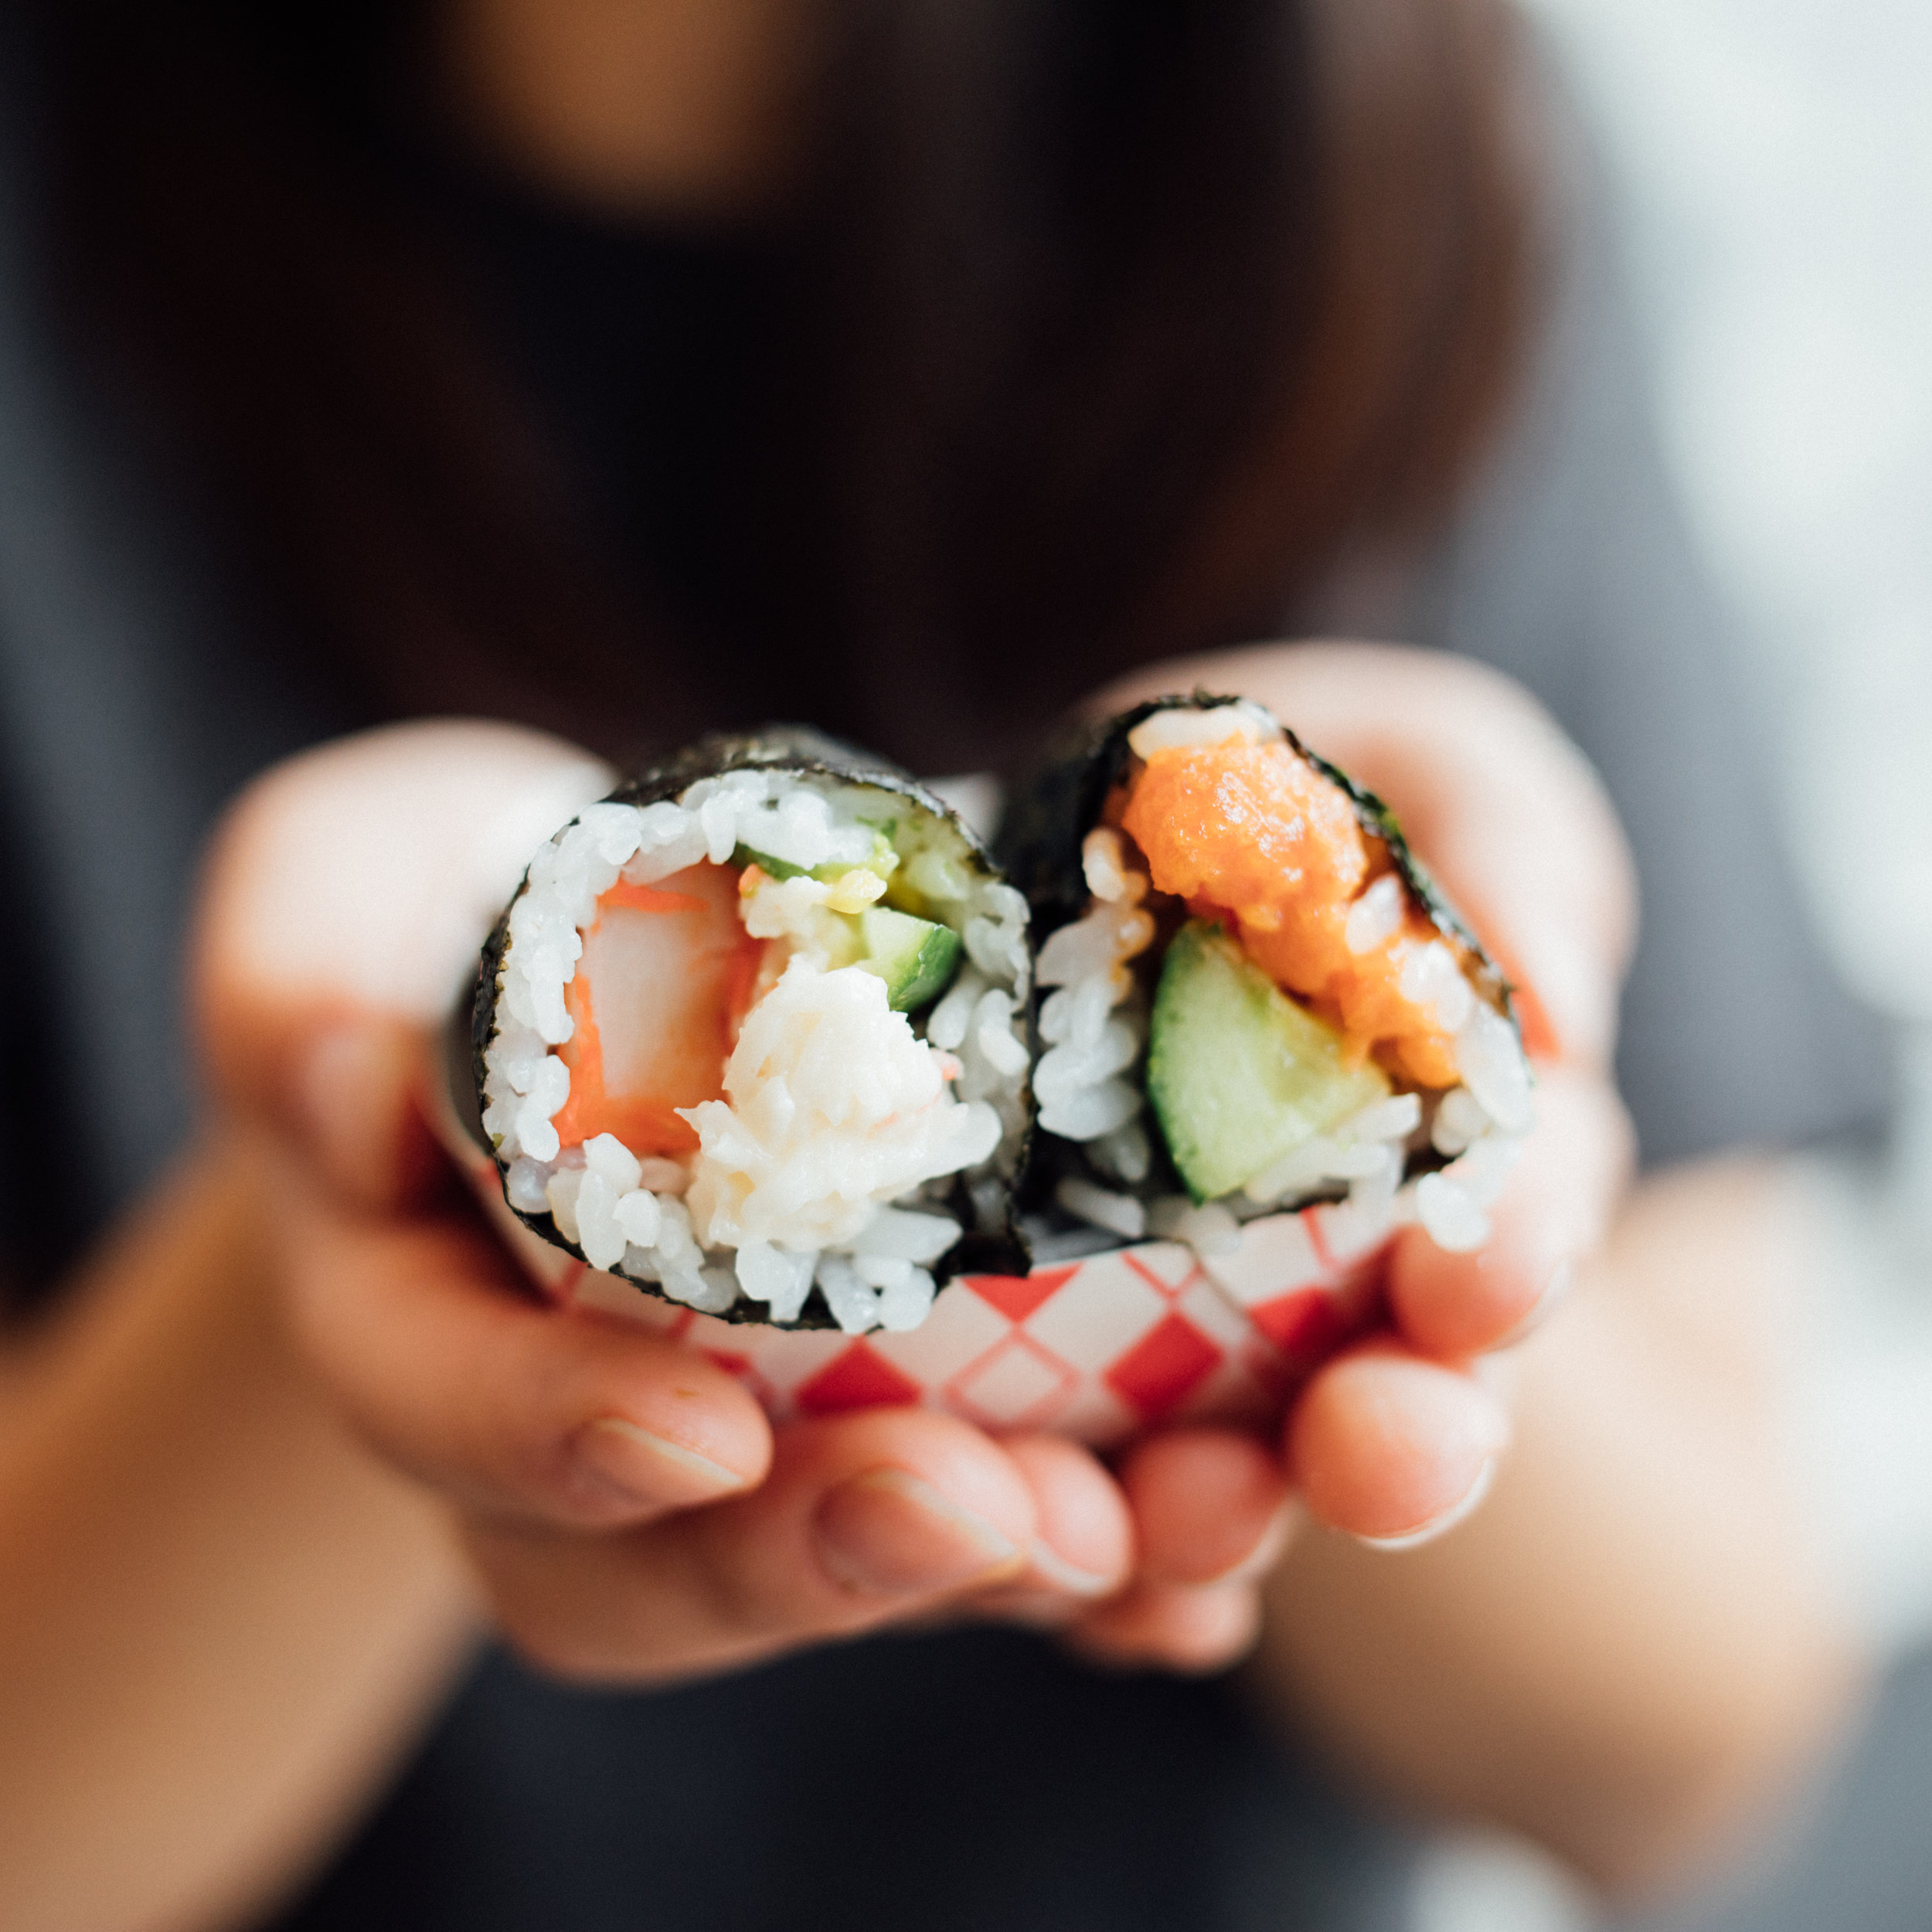 What we do - Meet regularly, usually in the evenings over sushiProvide free consultations to studentsDevelop and collate sustainability communications toolsOrganise and facilitate student workshops and events